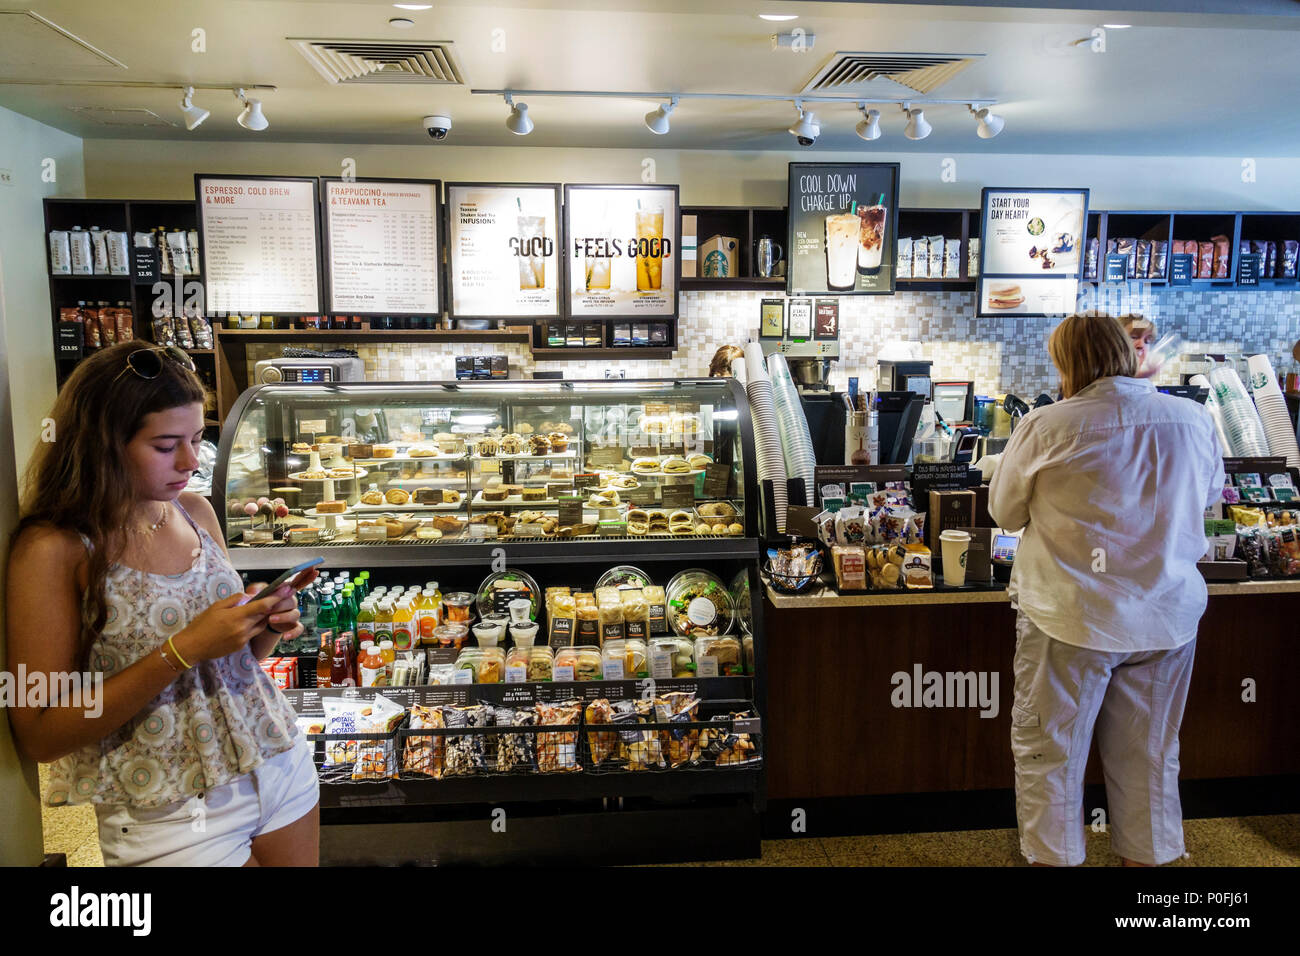 Florida Palm Beach Worth Avenue Esplanade shopping center Starbucks Coffee coffeehouse interior counter woman young adult using smartphone Stock Photo